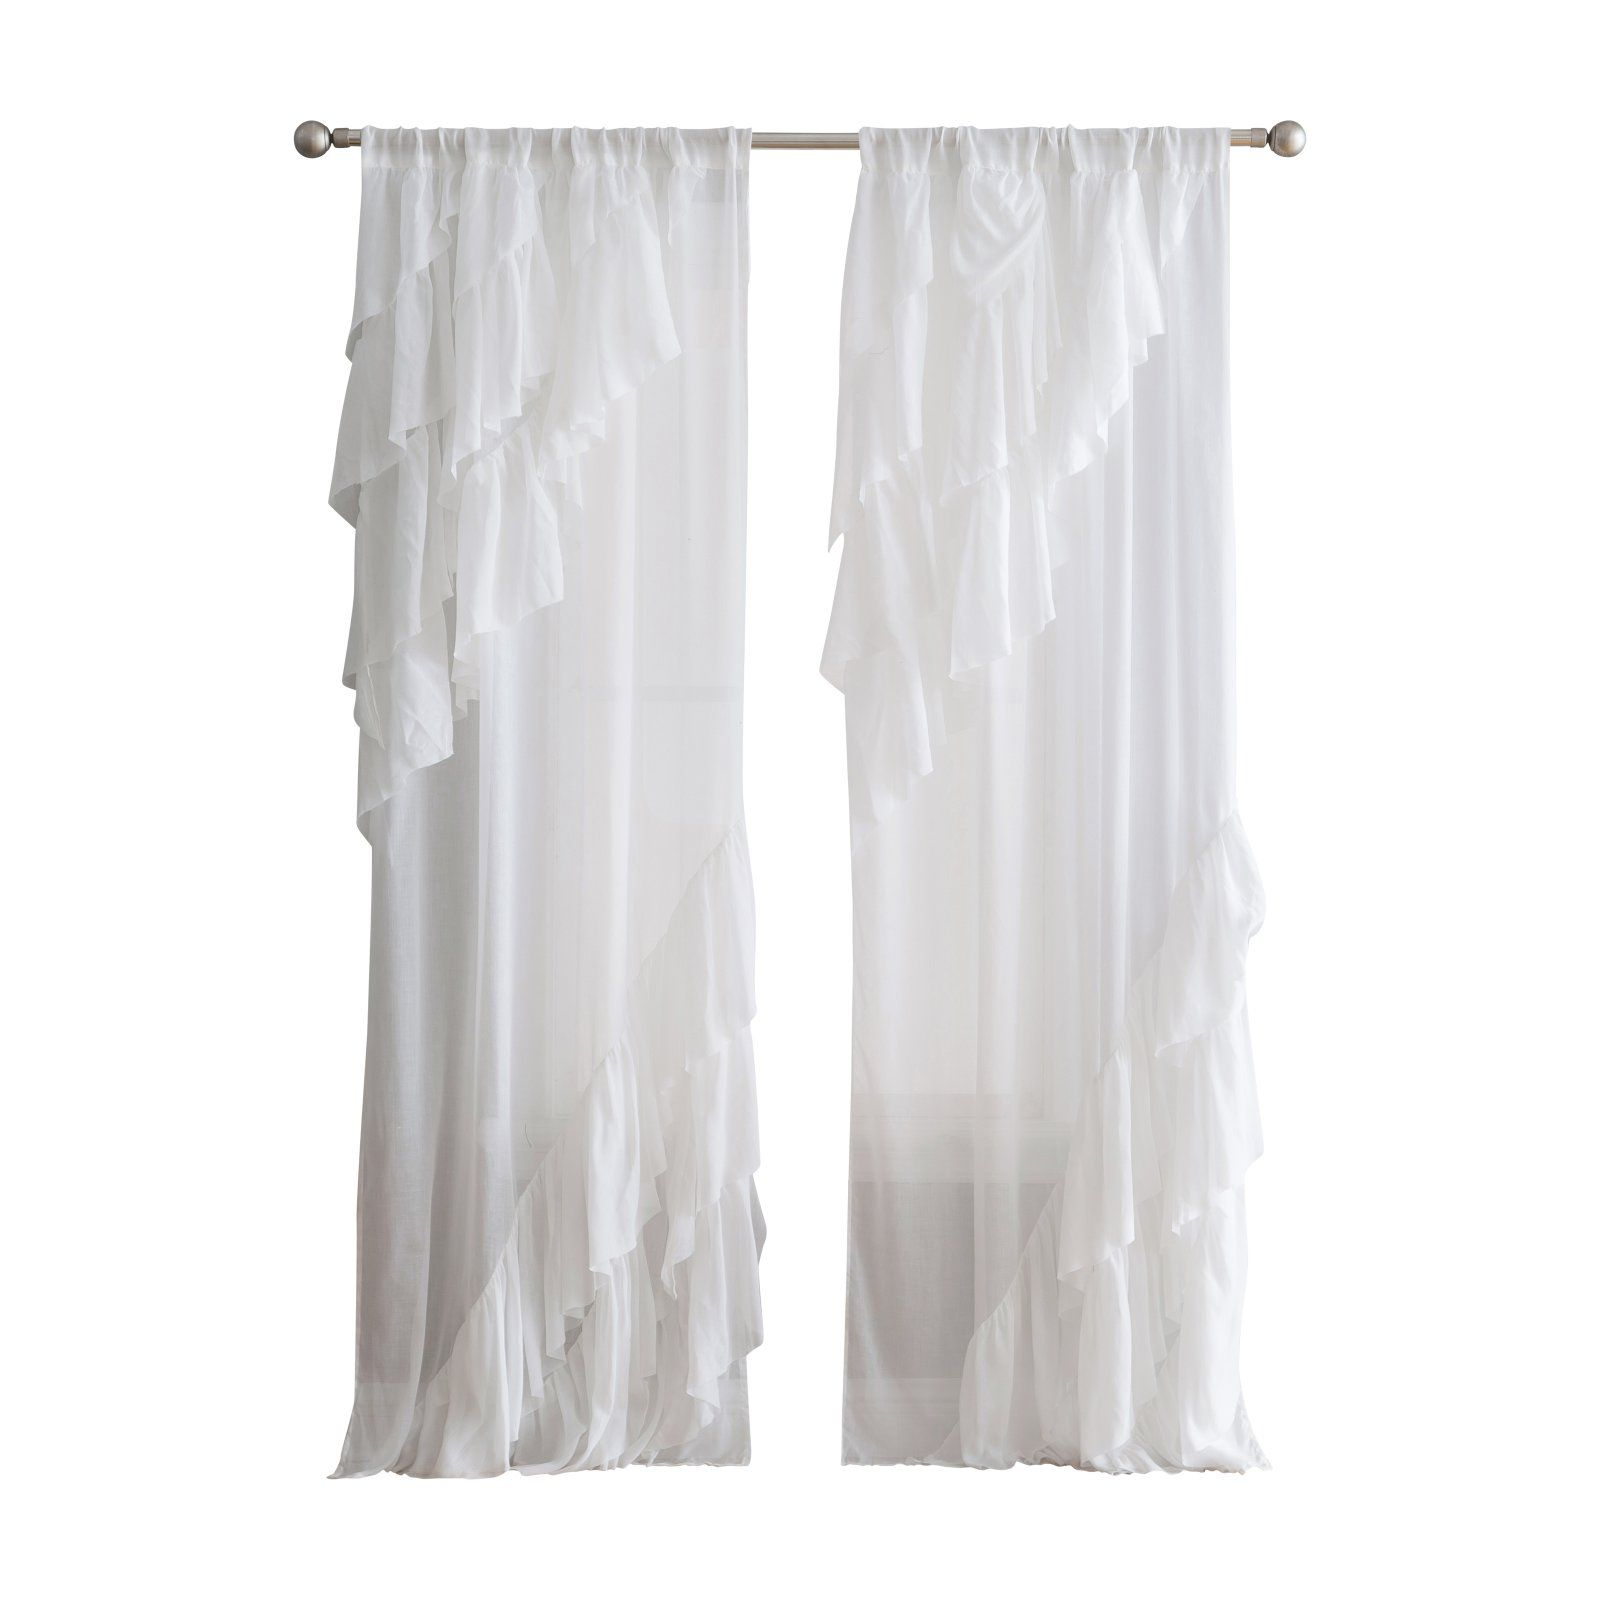 Ruffle Curtain Panel Peach And Oak Astrea Ruffle Curtain Panel In 2019 Products